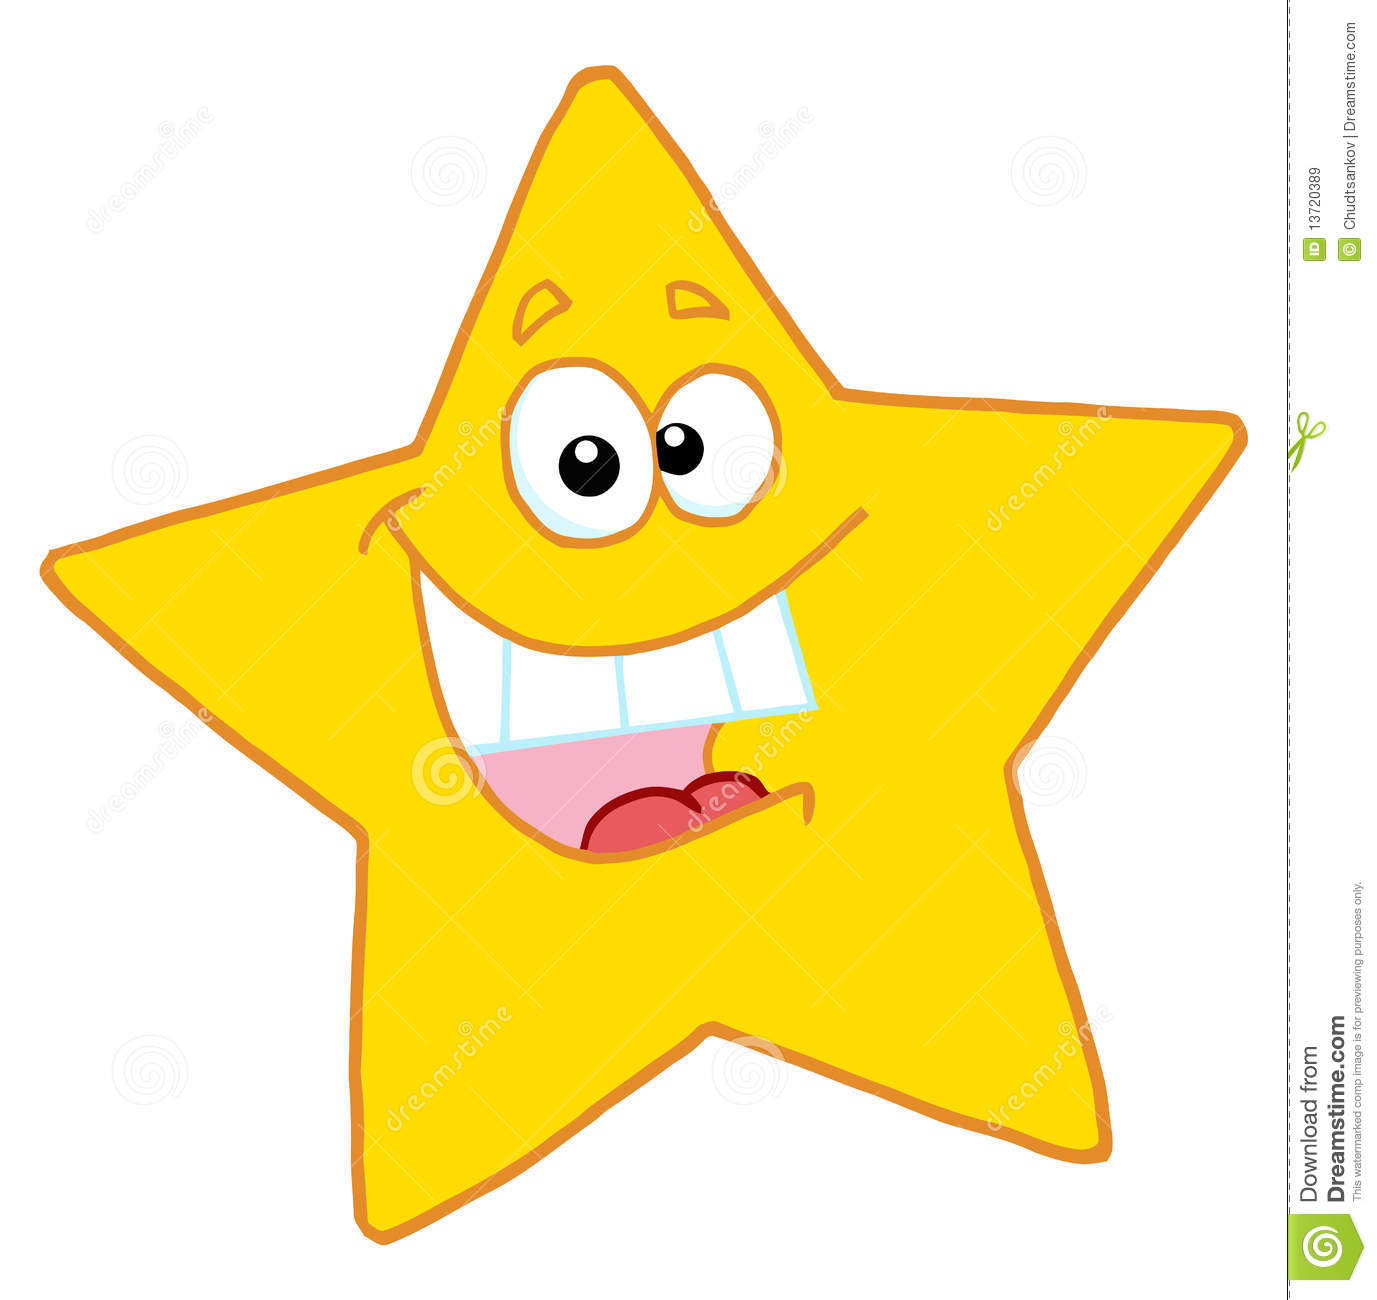 Happy Yellow Star Smiling Royalty Free Stock Images - Image: 13720389